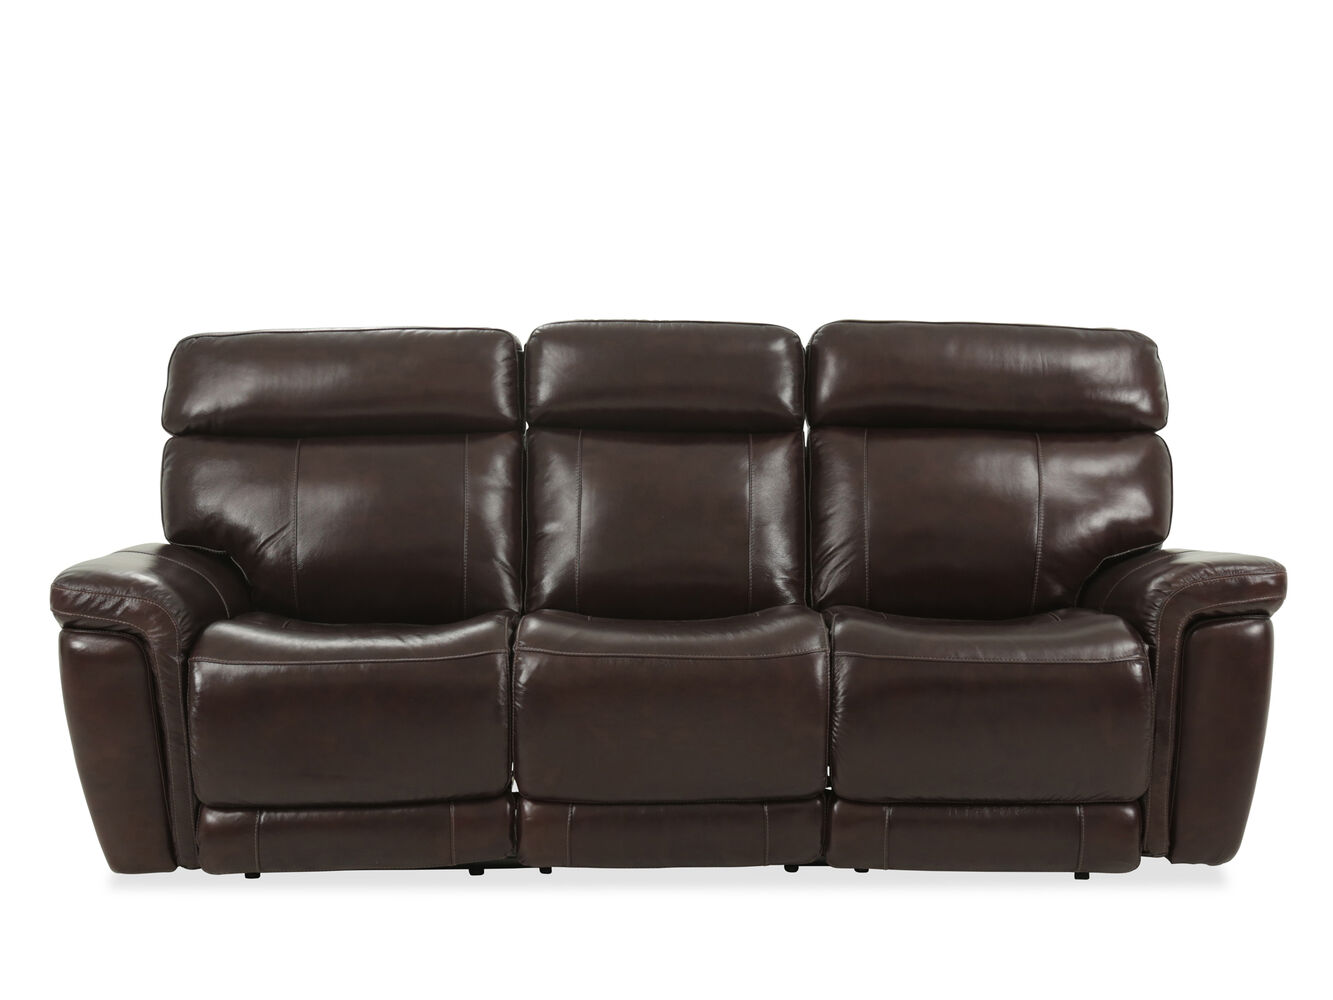 91 Quot Leather Power Reclining Sofa In Brown Mathis